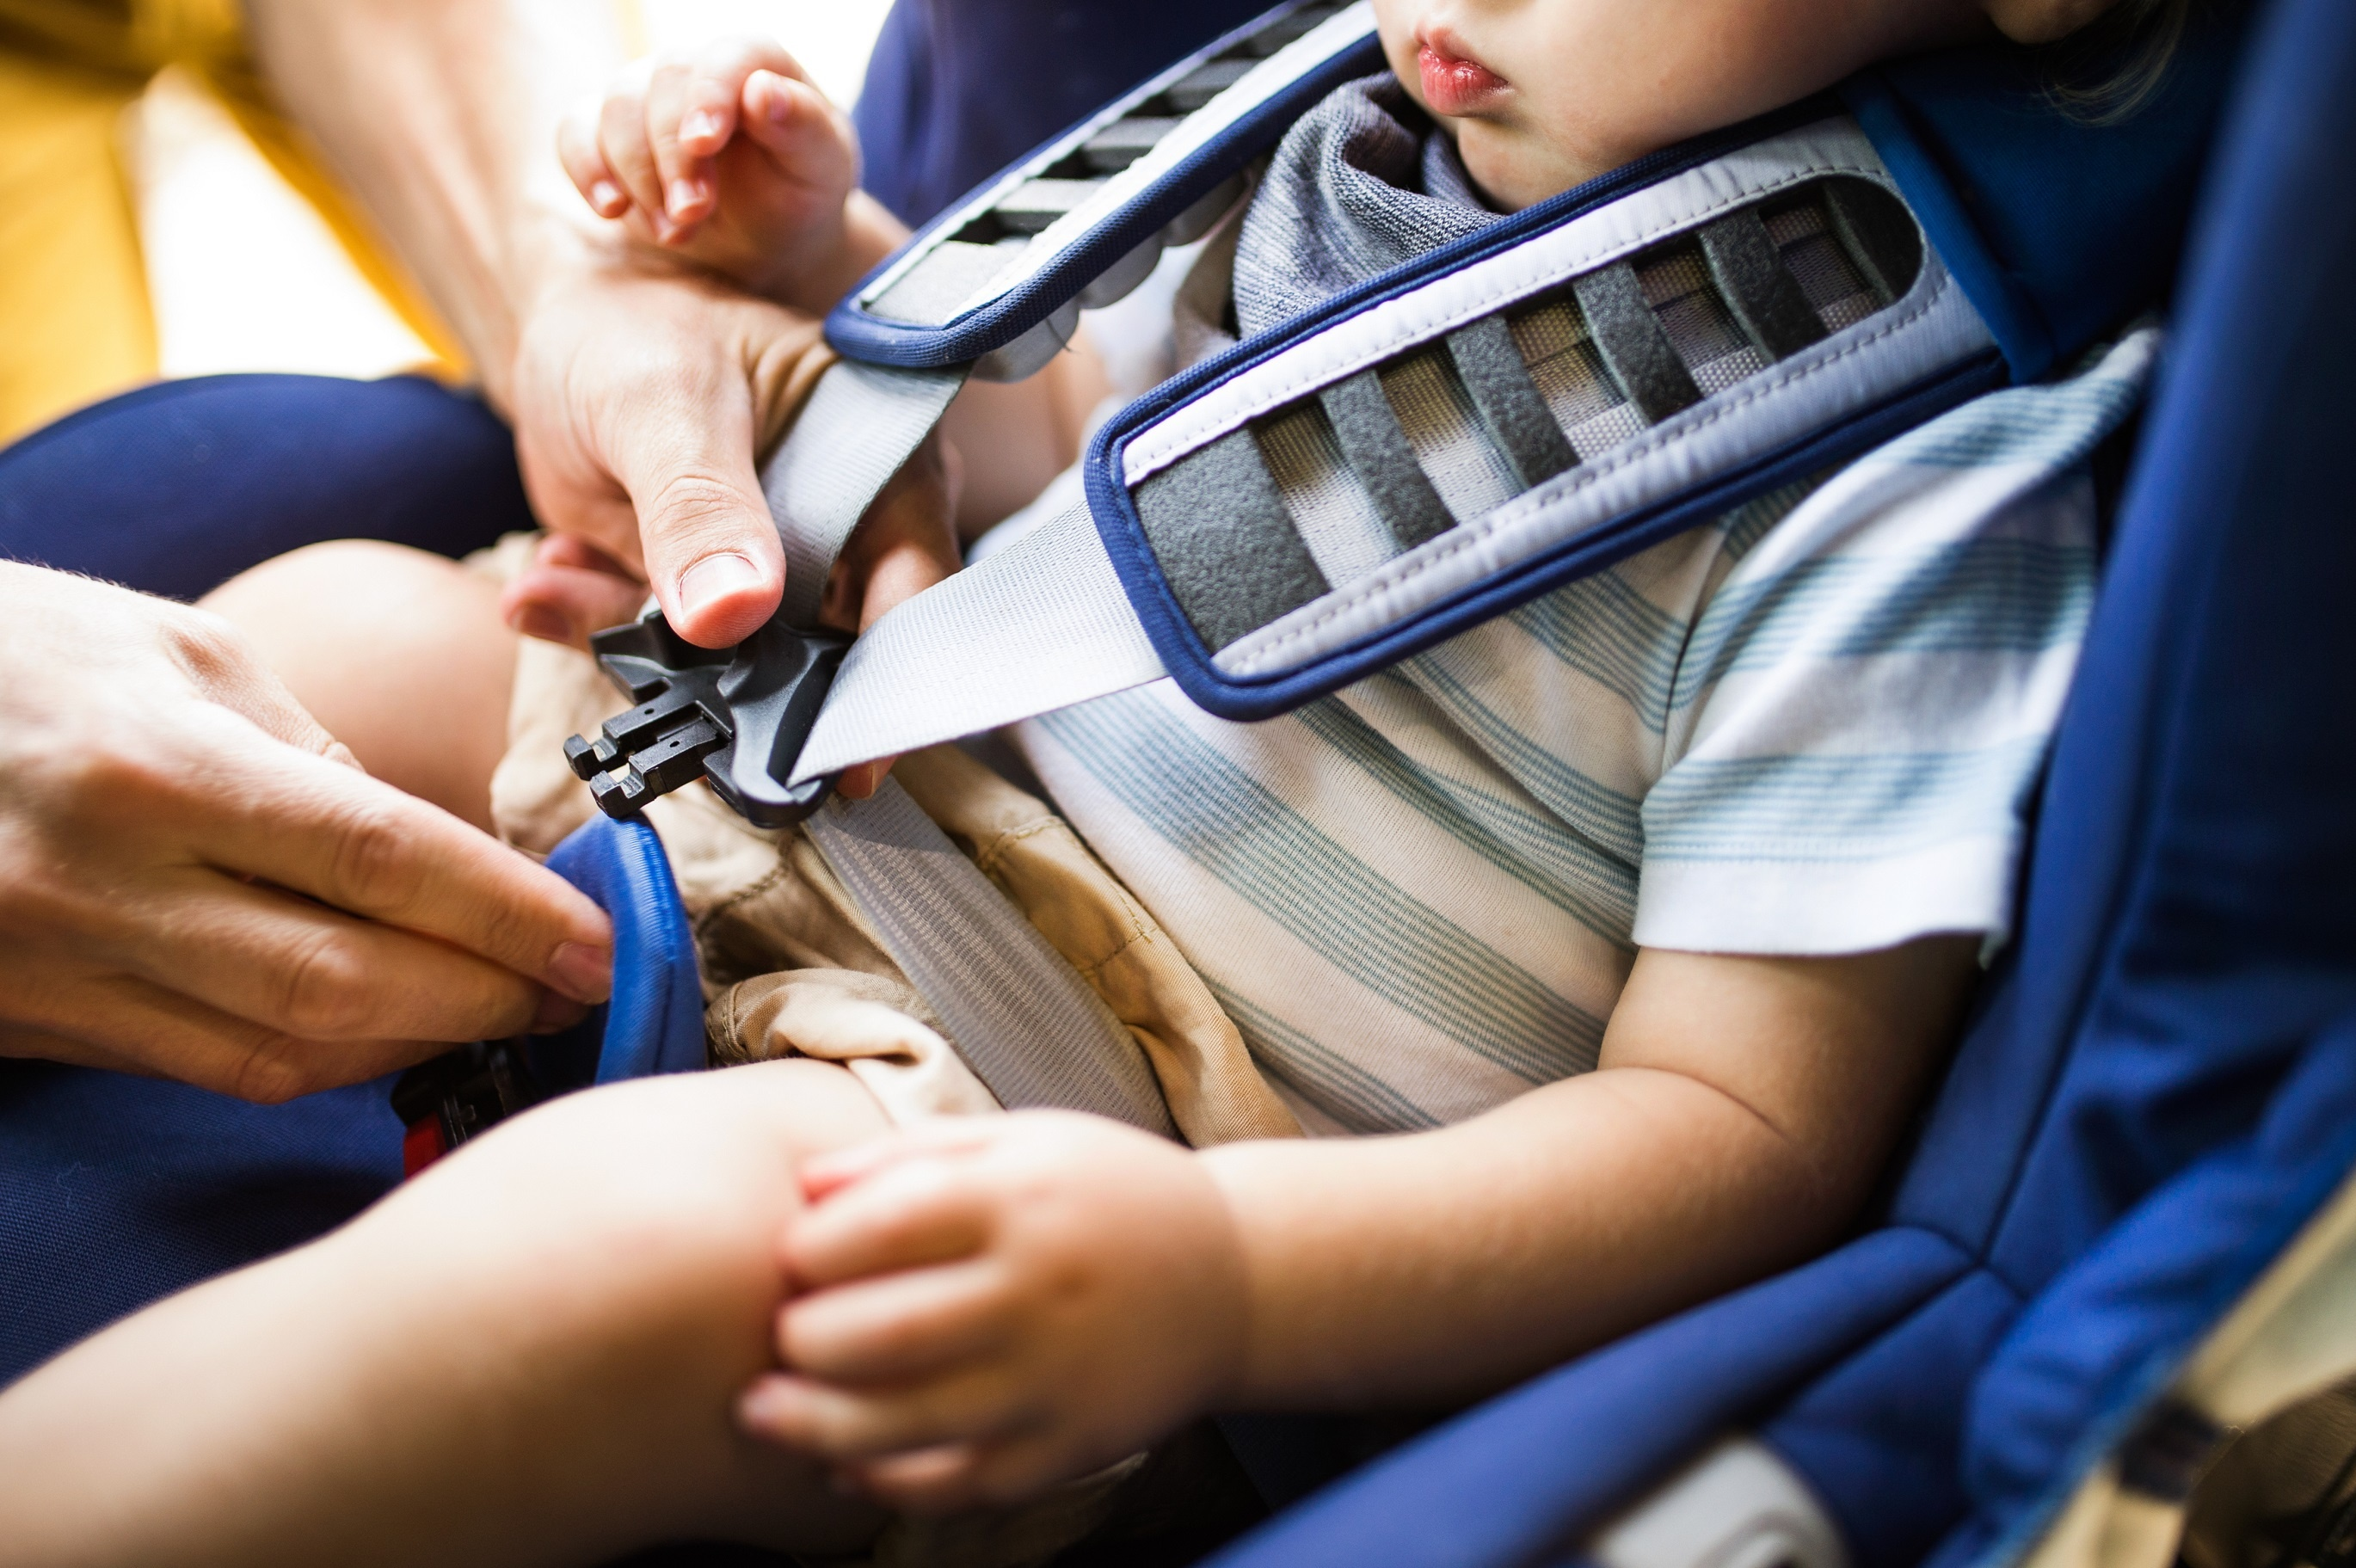 Infiniti Survey Indicates Over Half of Parents in Kuwait Unaware of Seatbelt Norms for Children